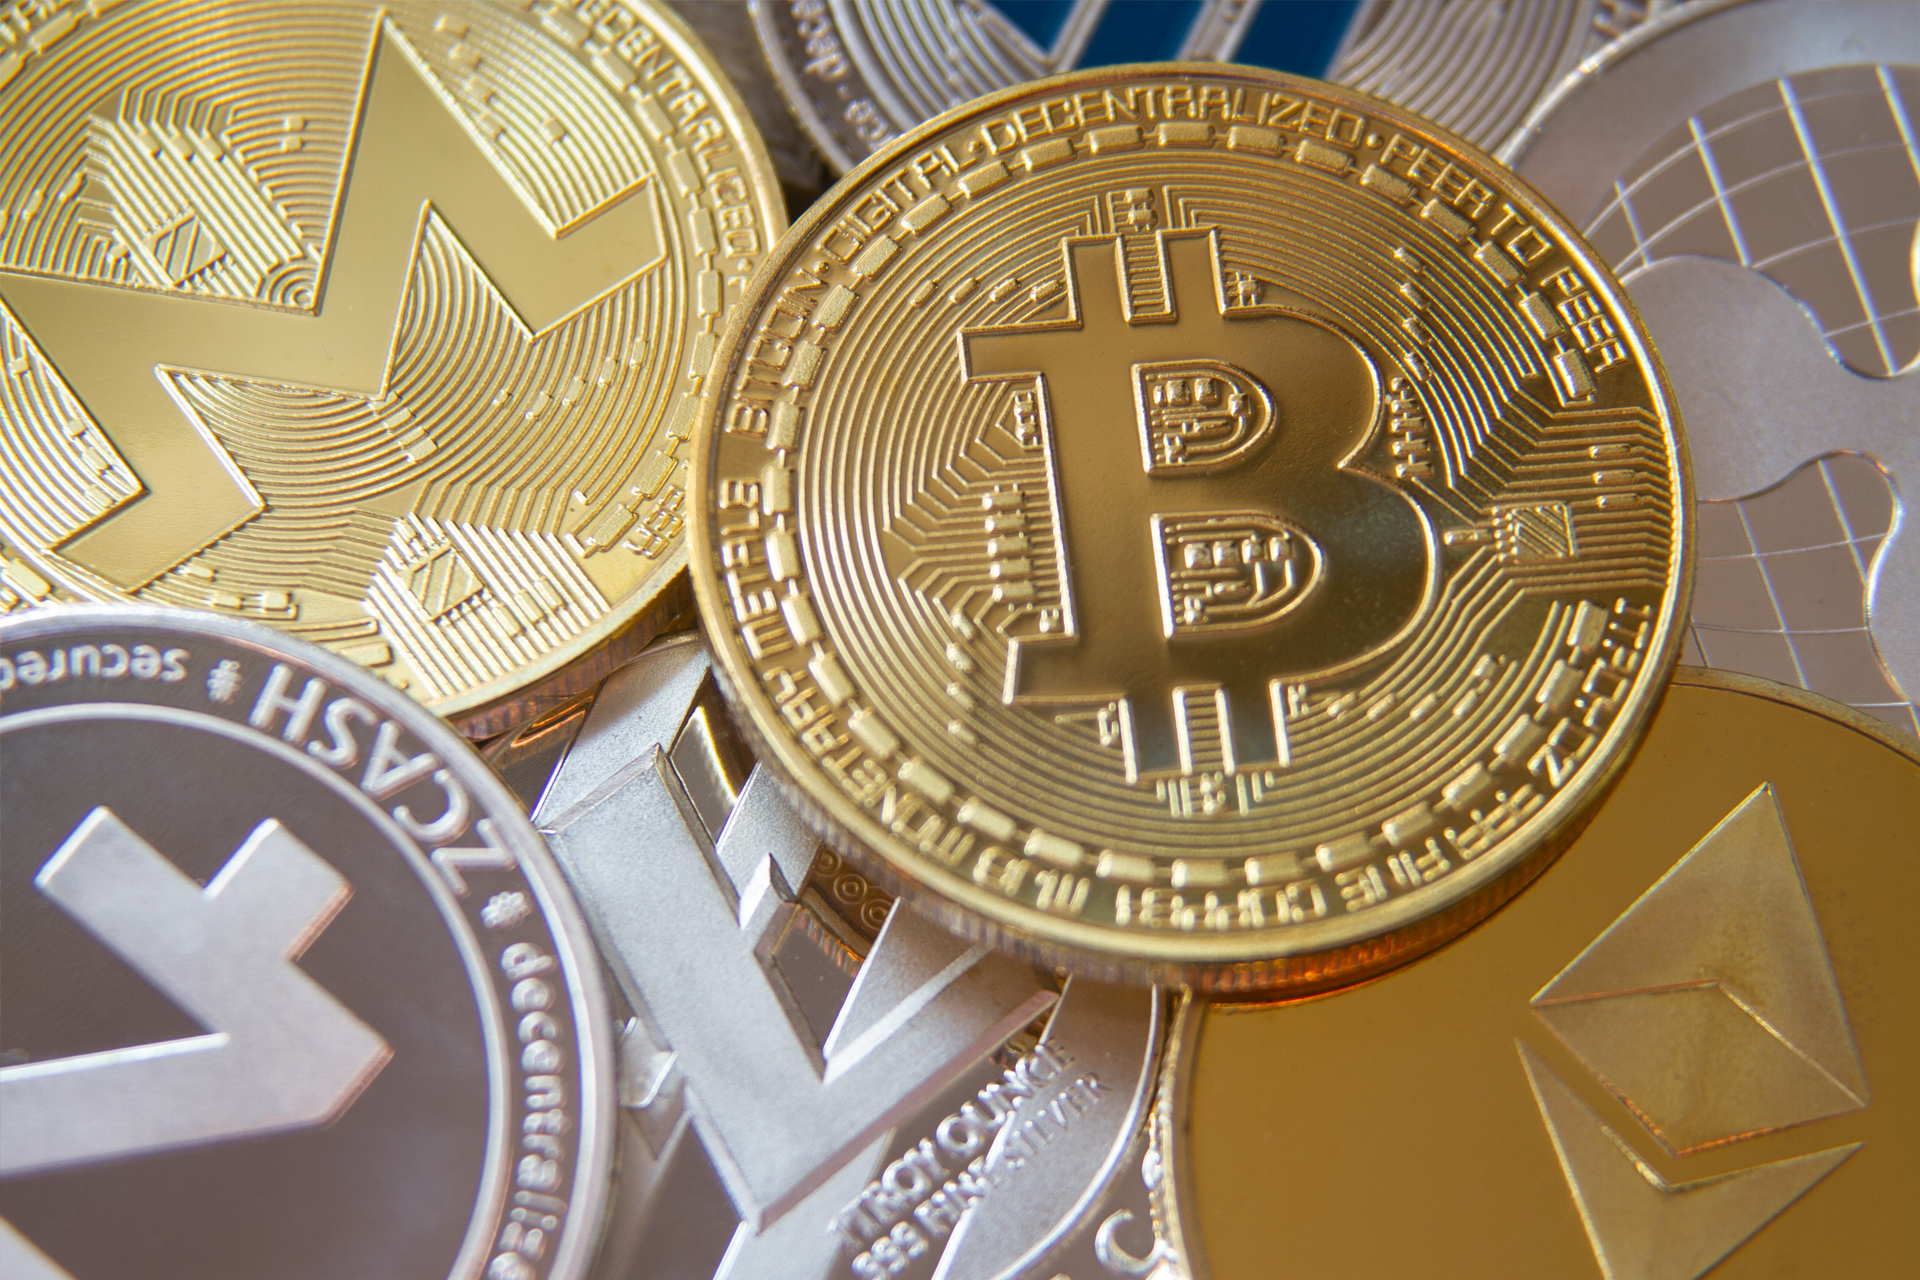 cryptocurrency coins view from top free image download